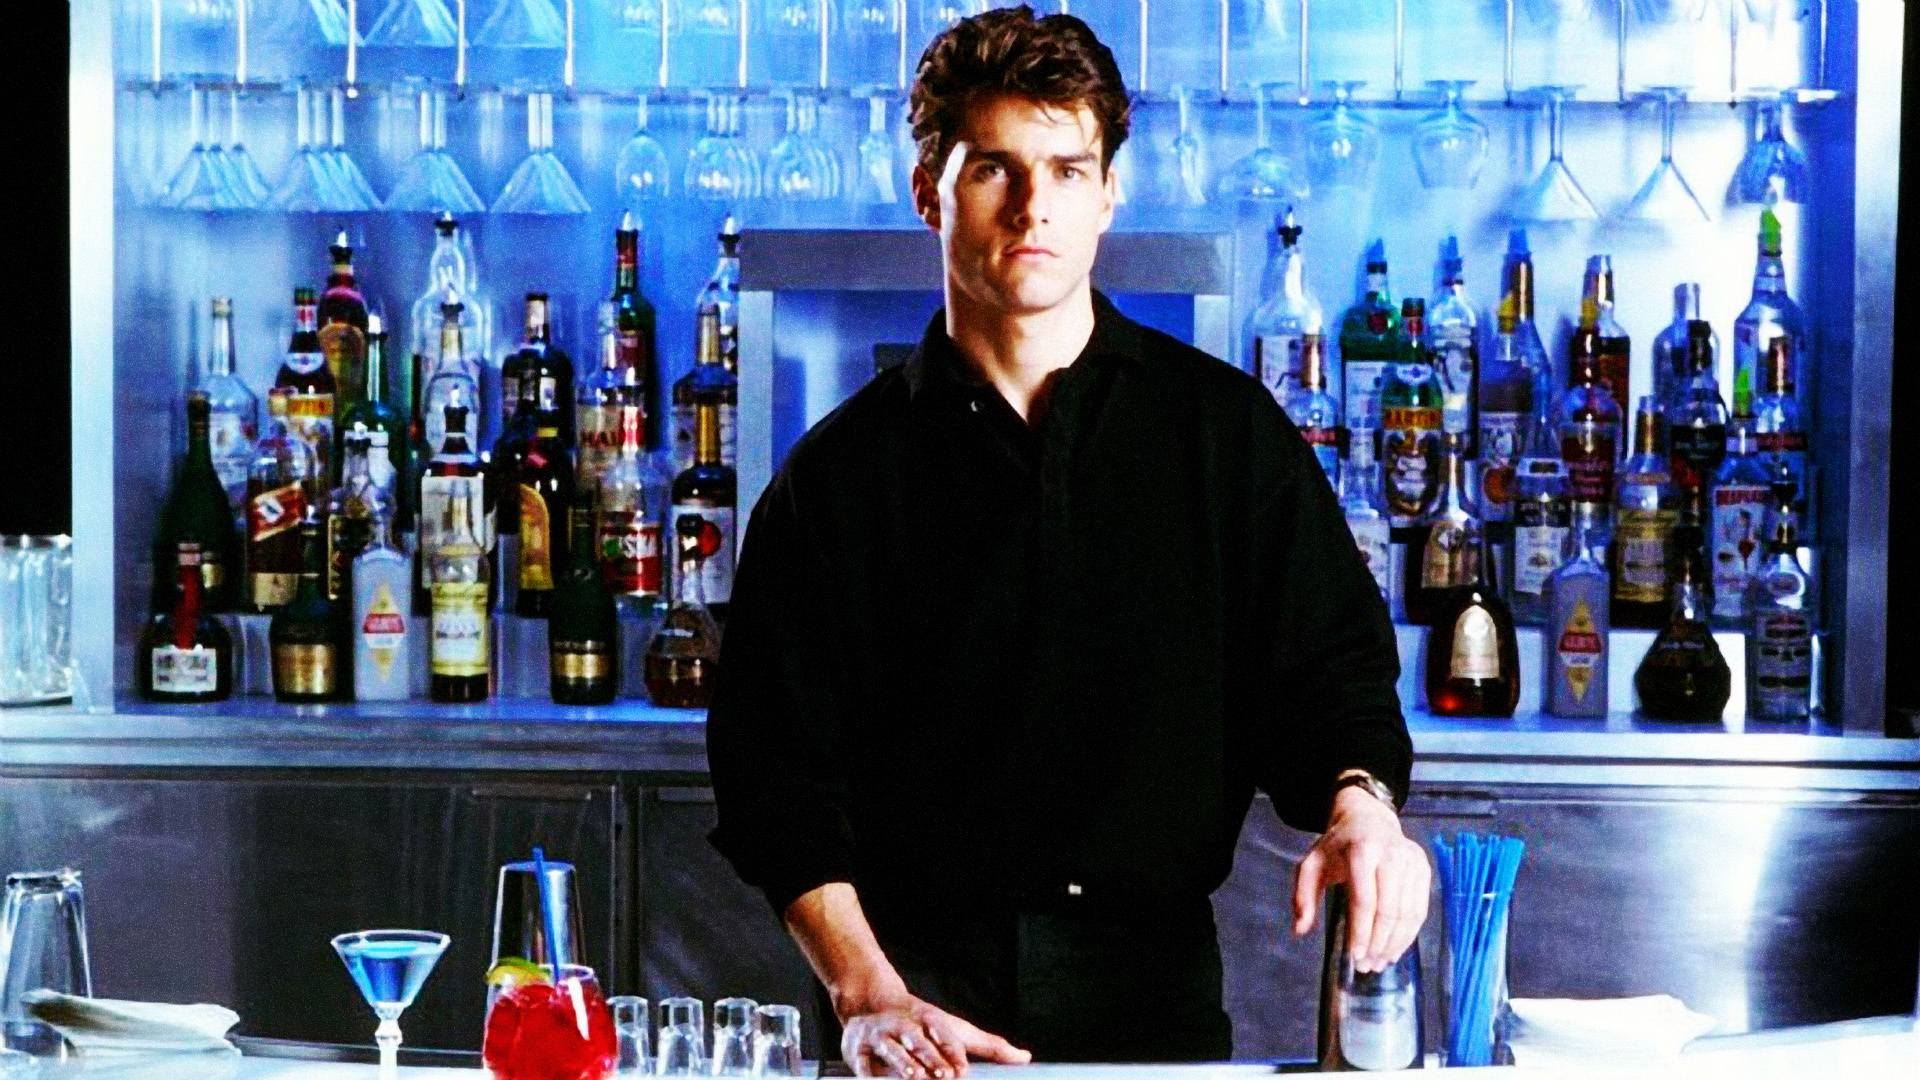 tom cruise atras do balcao no filme cocktail